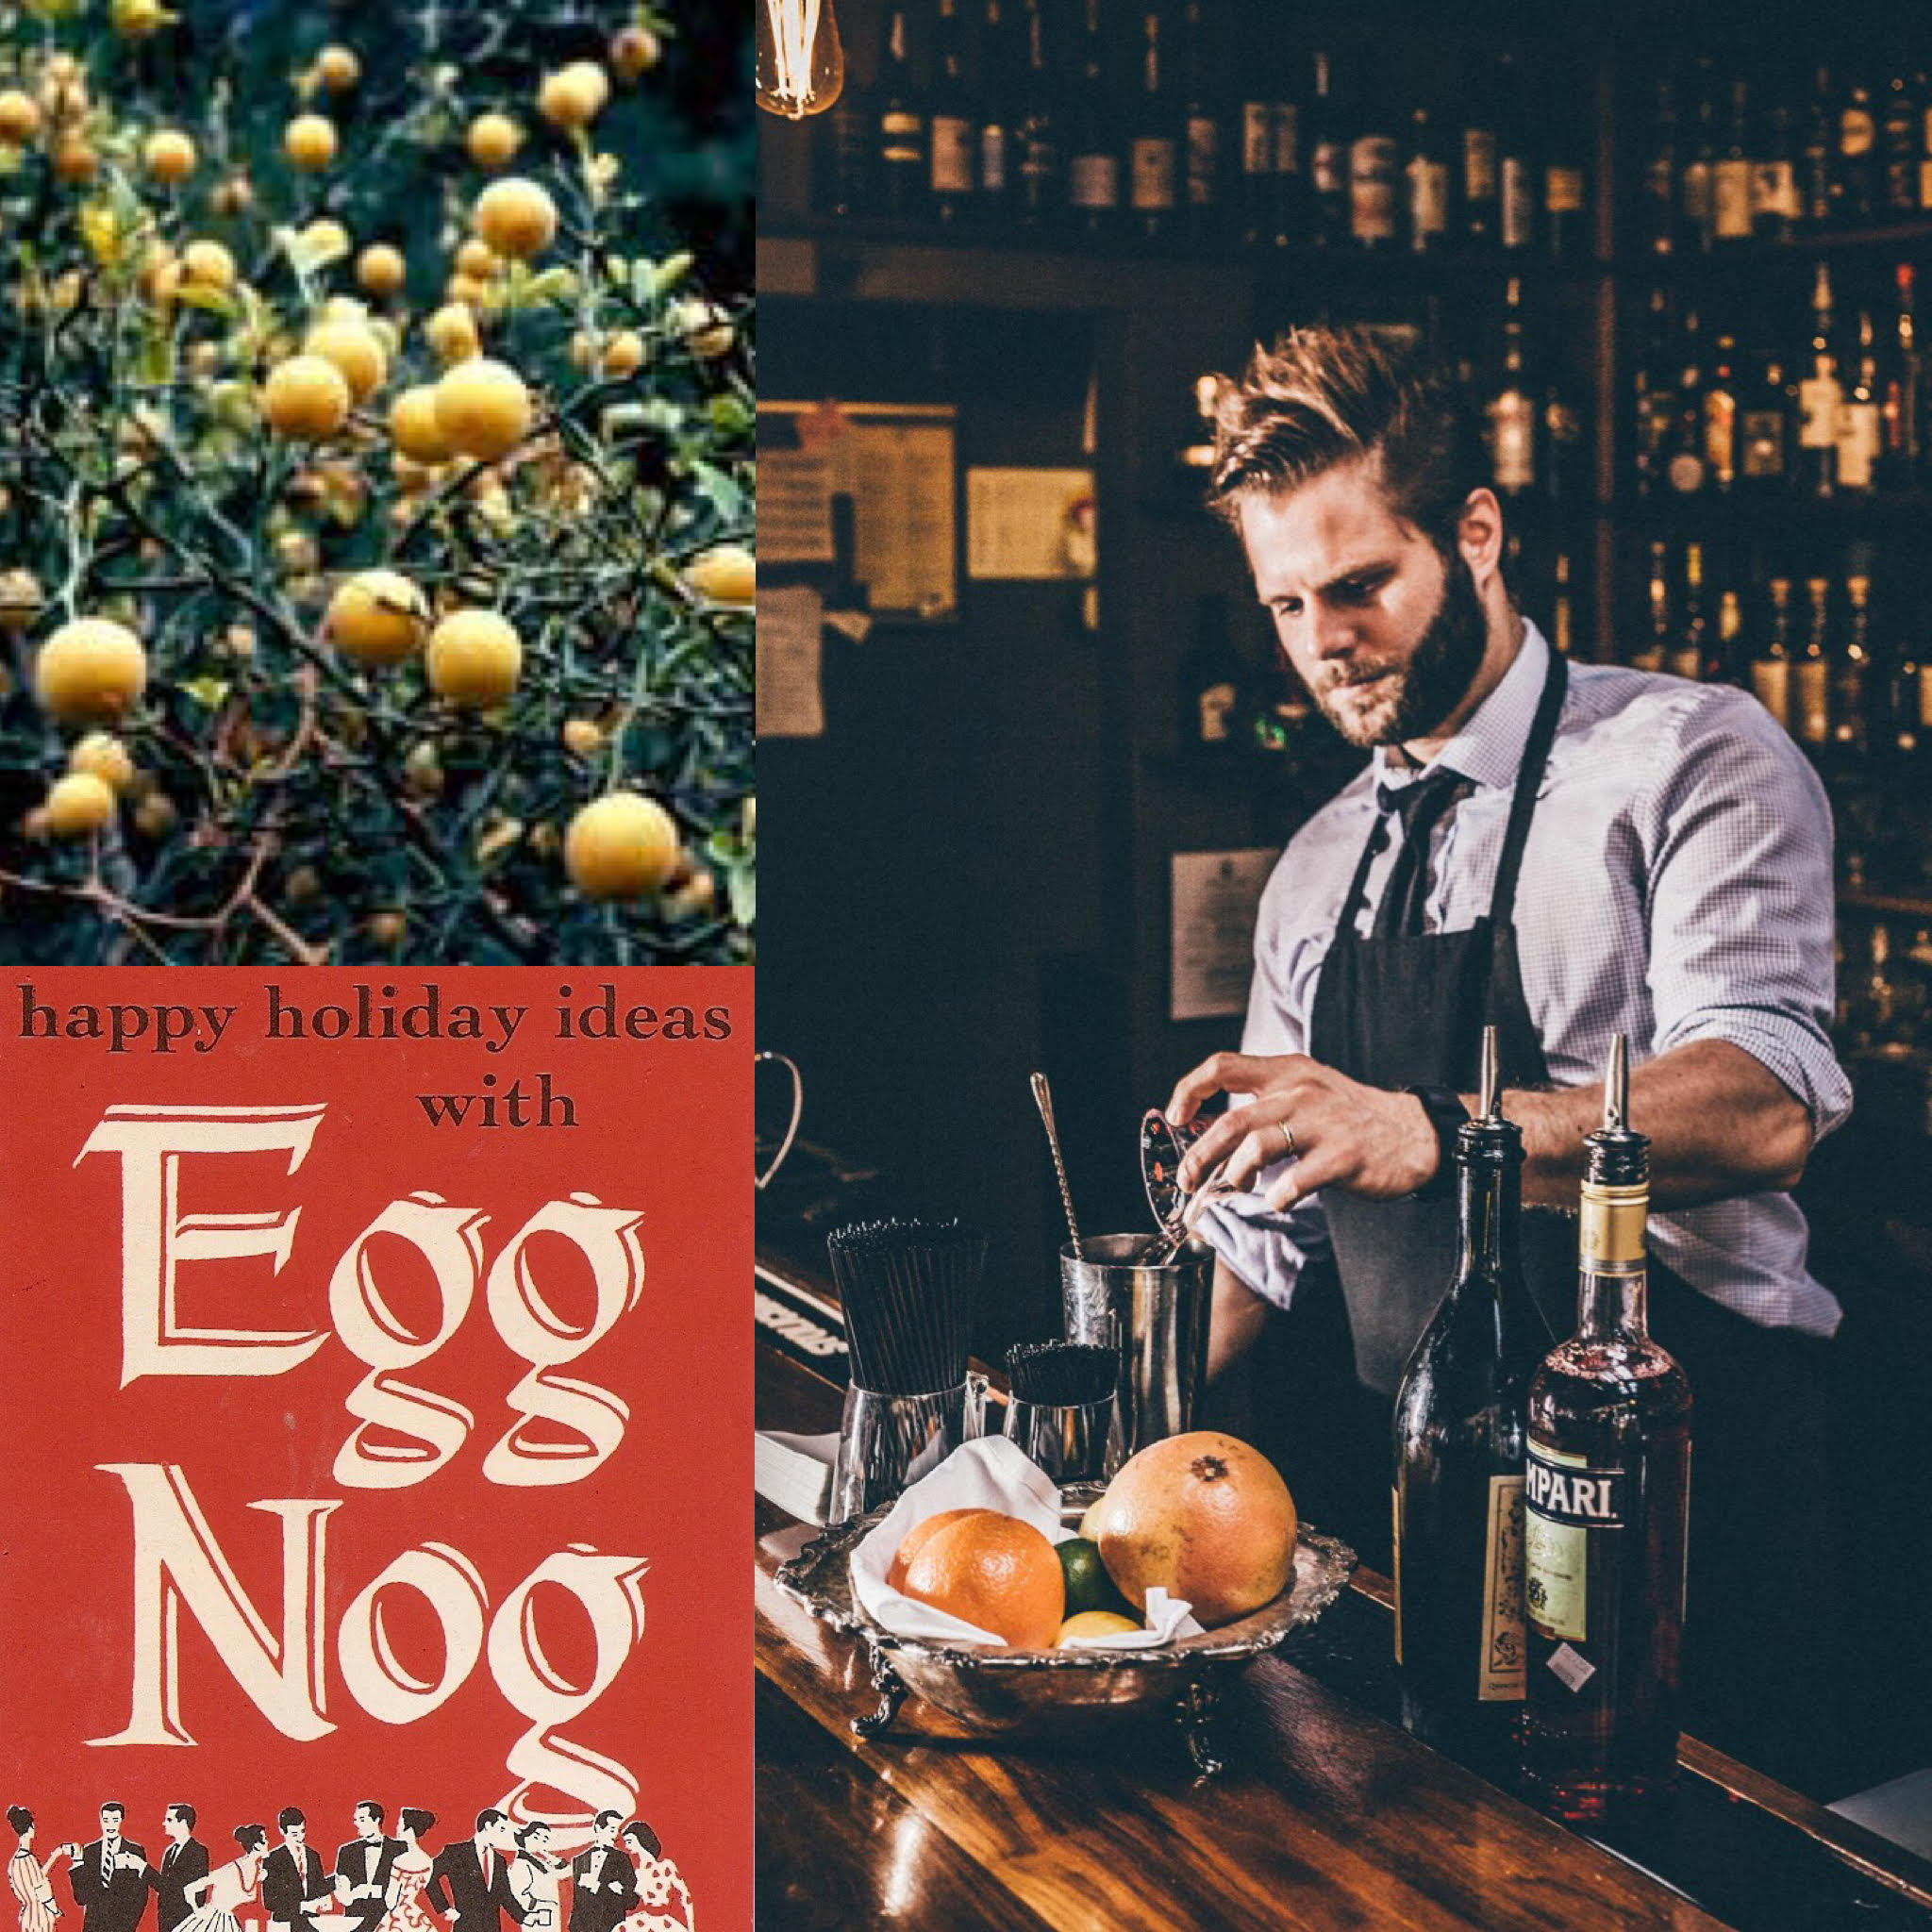 Hard Nog & Hardy Oranges: A History of Virginian Cocktails with Micah LeMon      Listen H ere    Join us for a special holiday episode where we investigate the rich mixed drink history of Virginia with Micah LeMon, bartender and author of  The Imbible, A Cocktail Guide for Beginning & Home Bartenders .